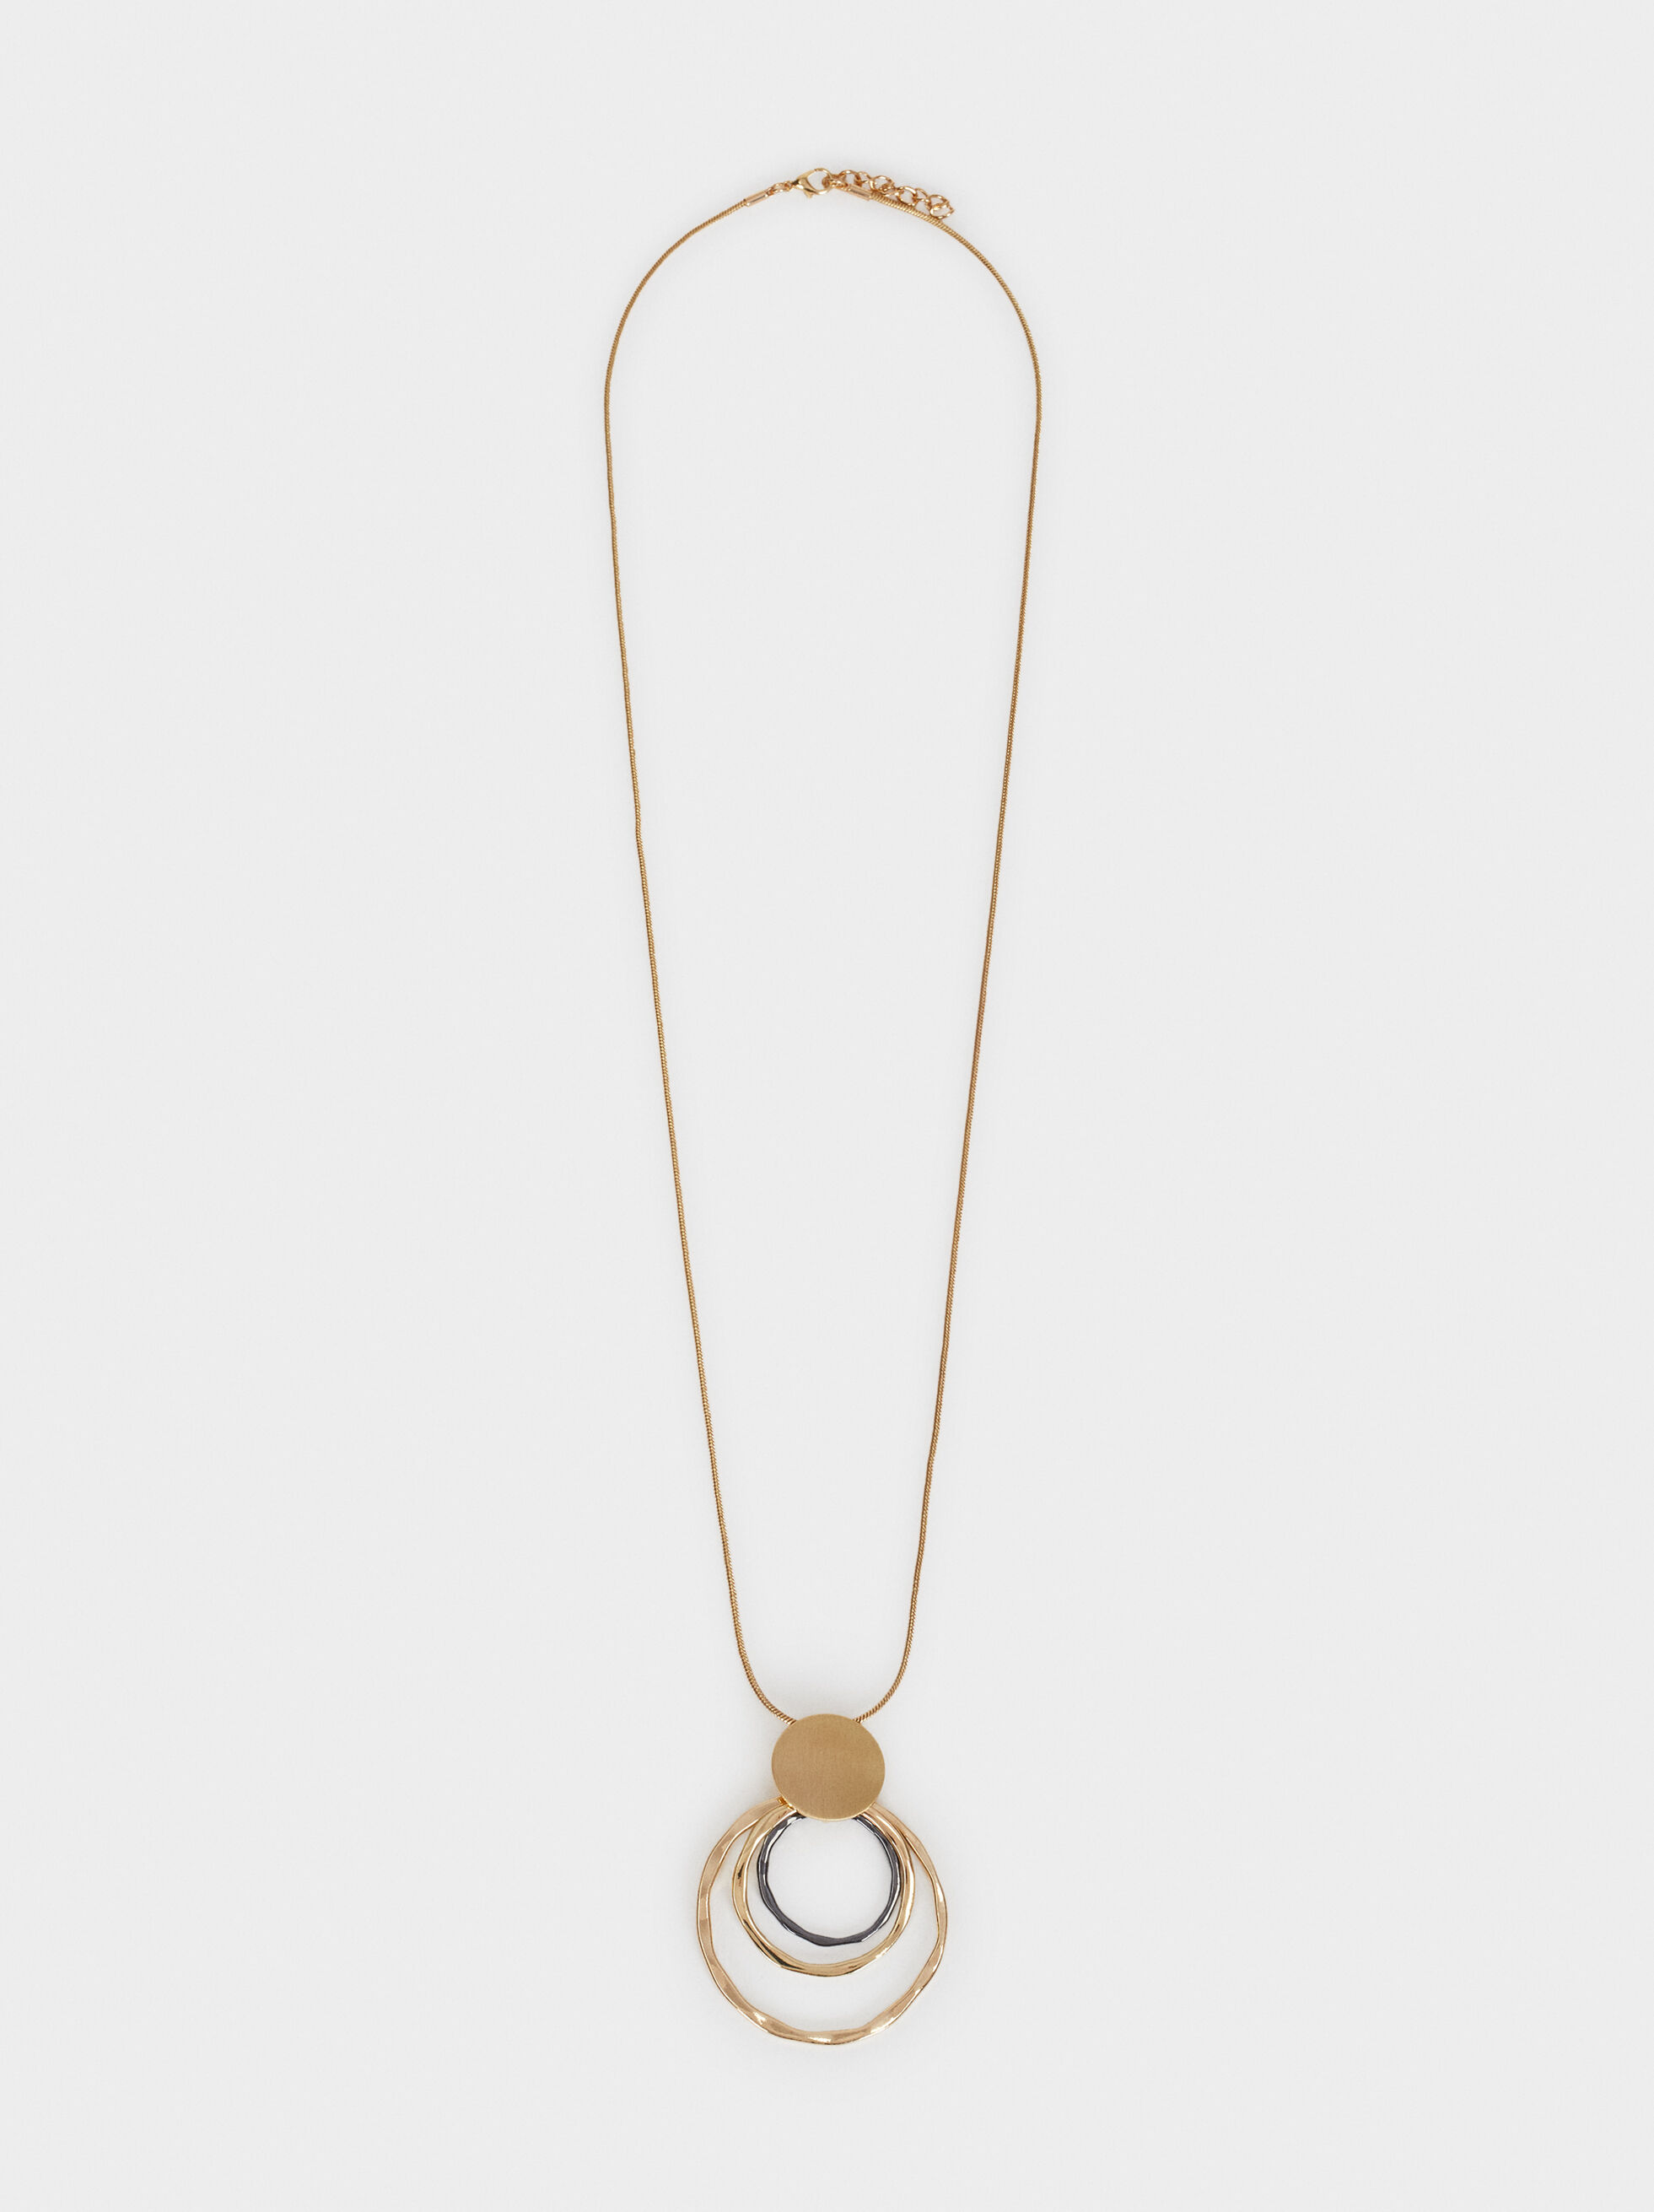 Long Necklace With Pendant, , hi-res